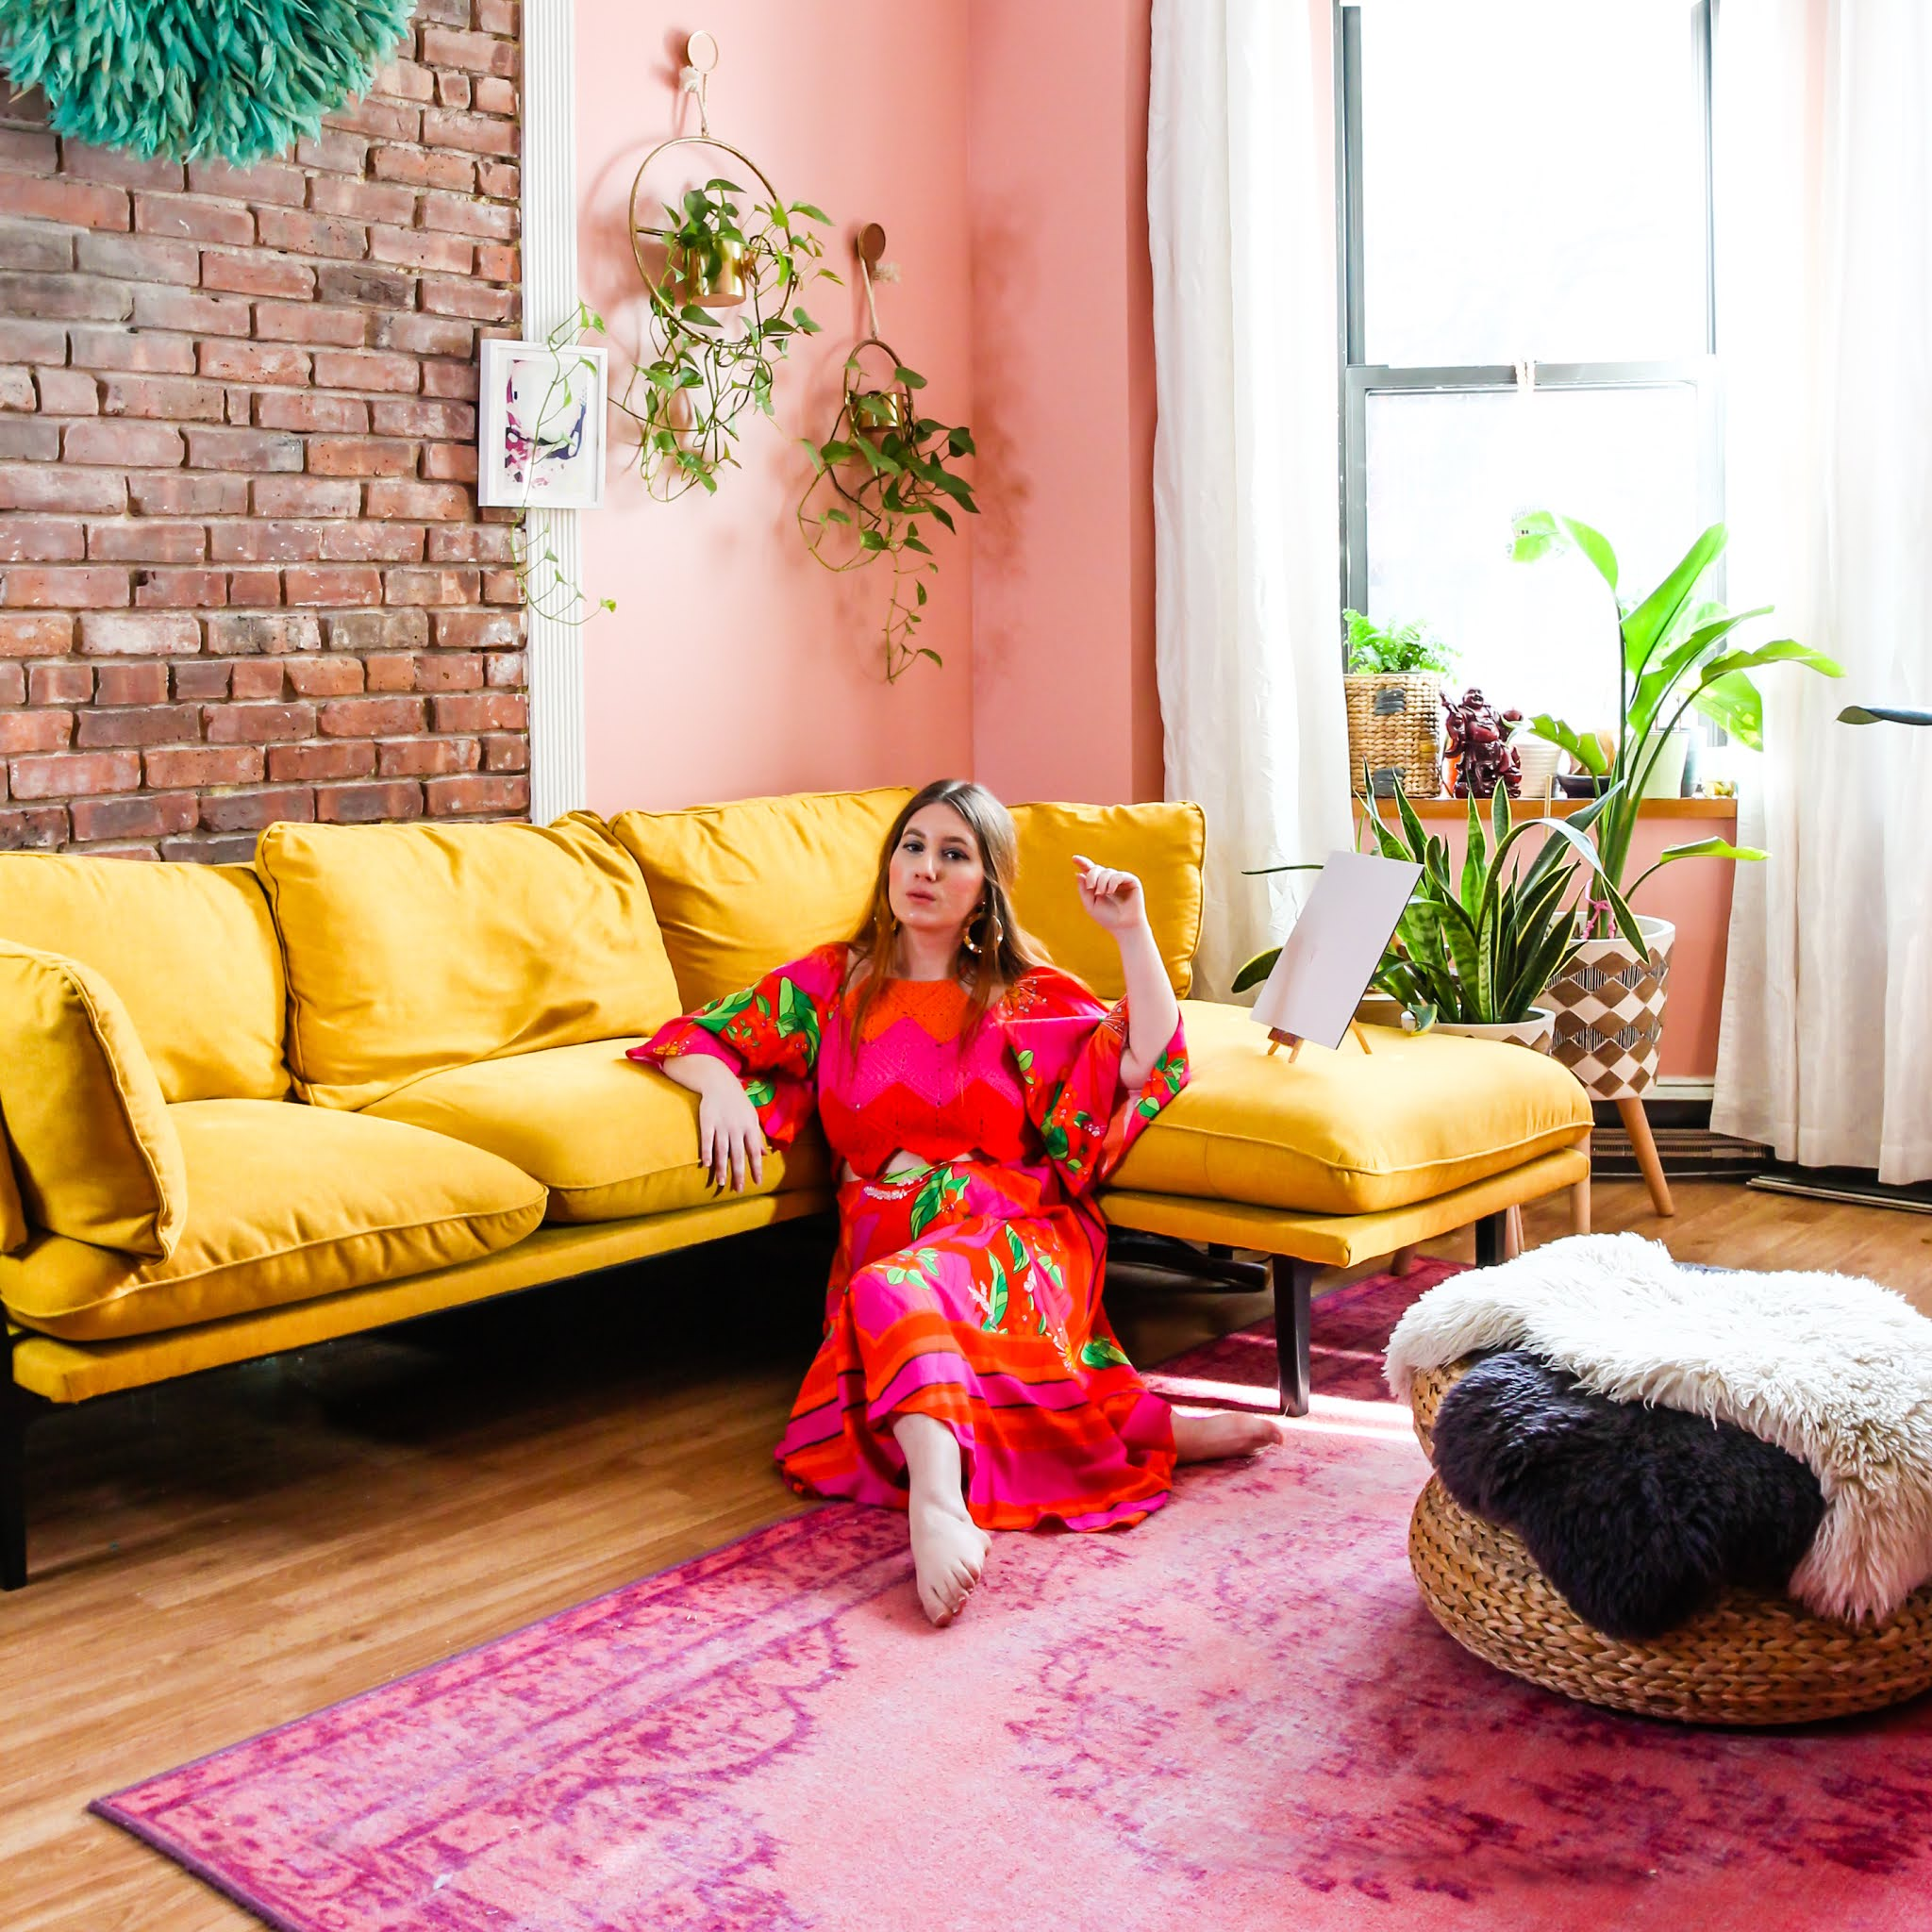 colorful home inspo // easy ways to decorate with color // how to decorate with color // colorful home inspo // pink home decor // yellow sofa inspo // exposed brick inspo // pink living room // colorful homes // pink rug inspo // pink and yellow decor